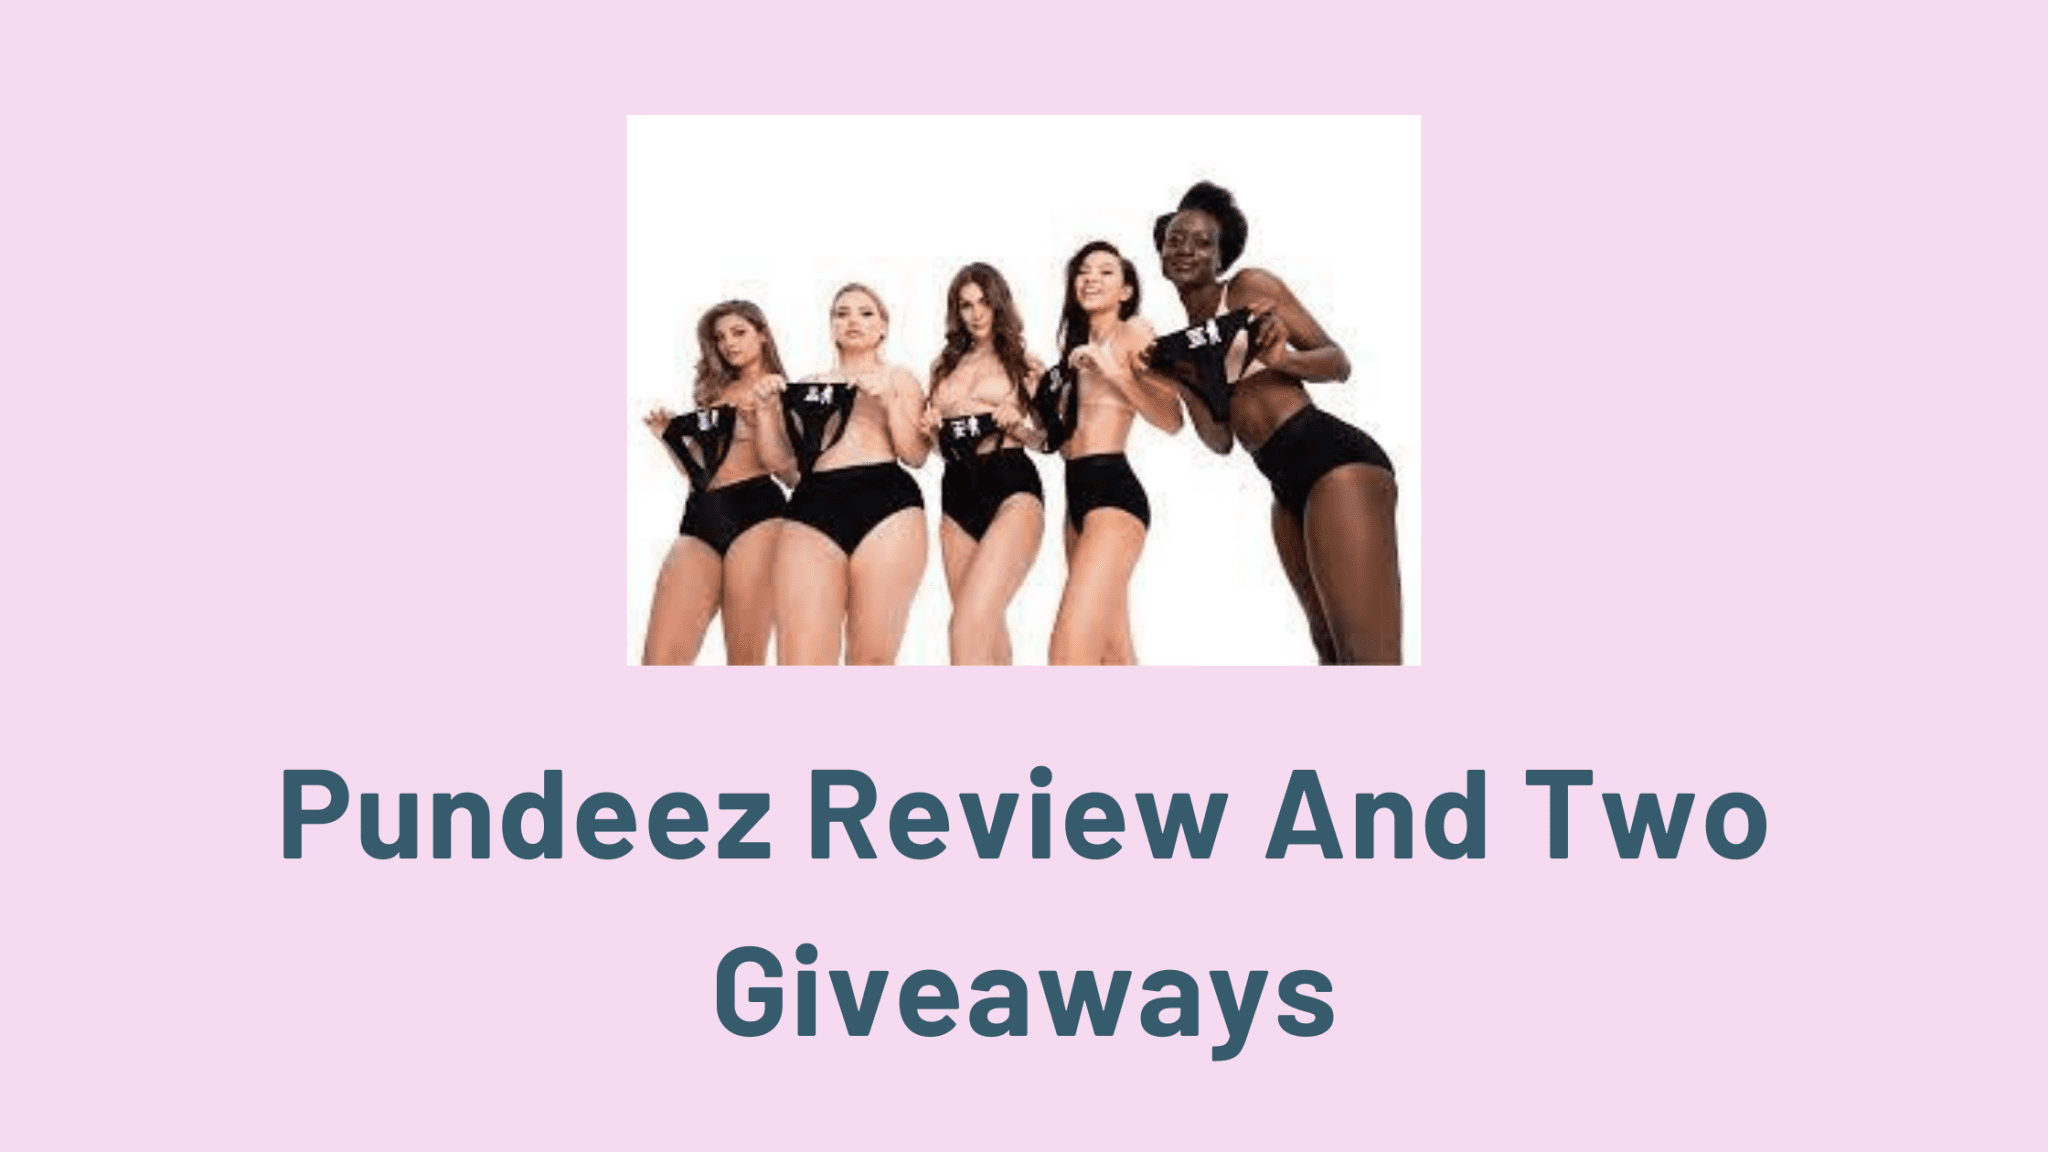 Pundeez Review And Two Giveaways